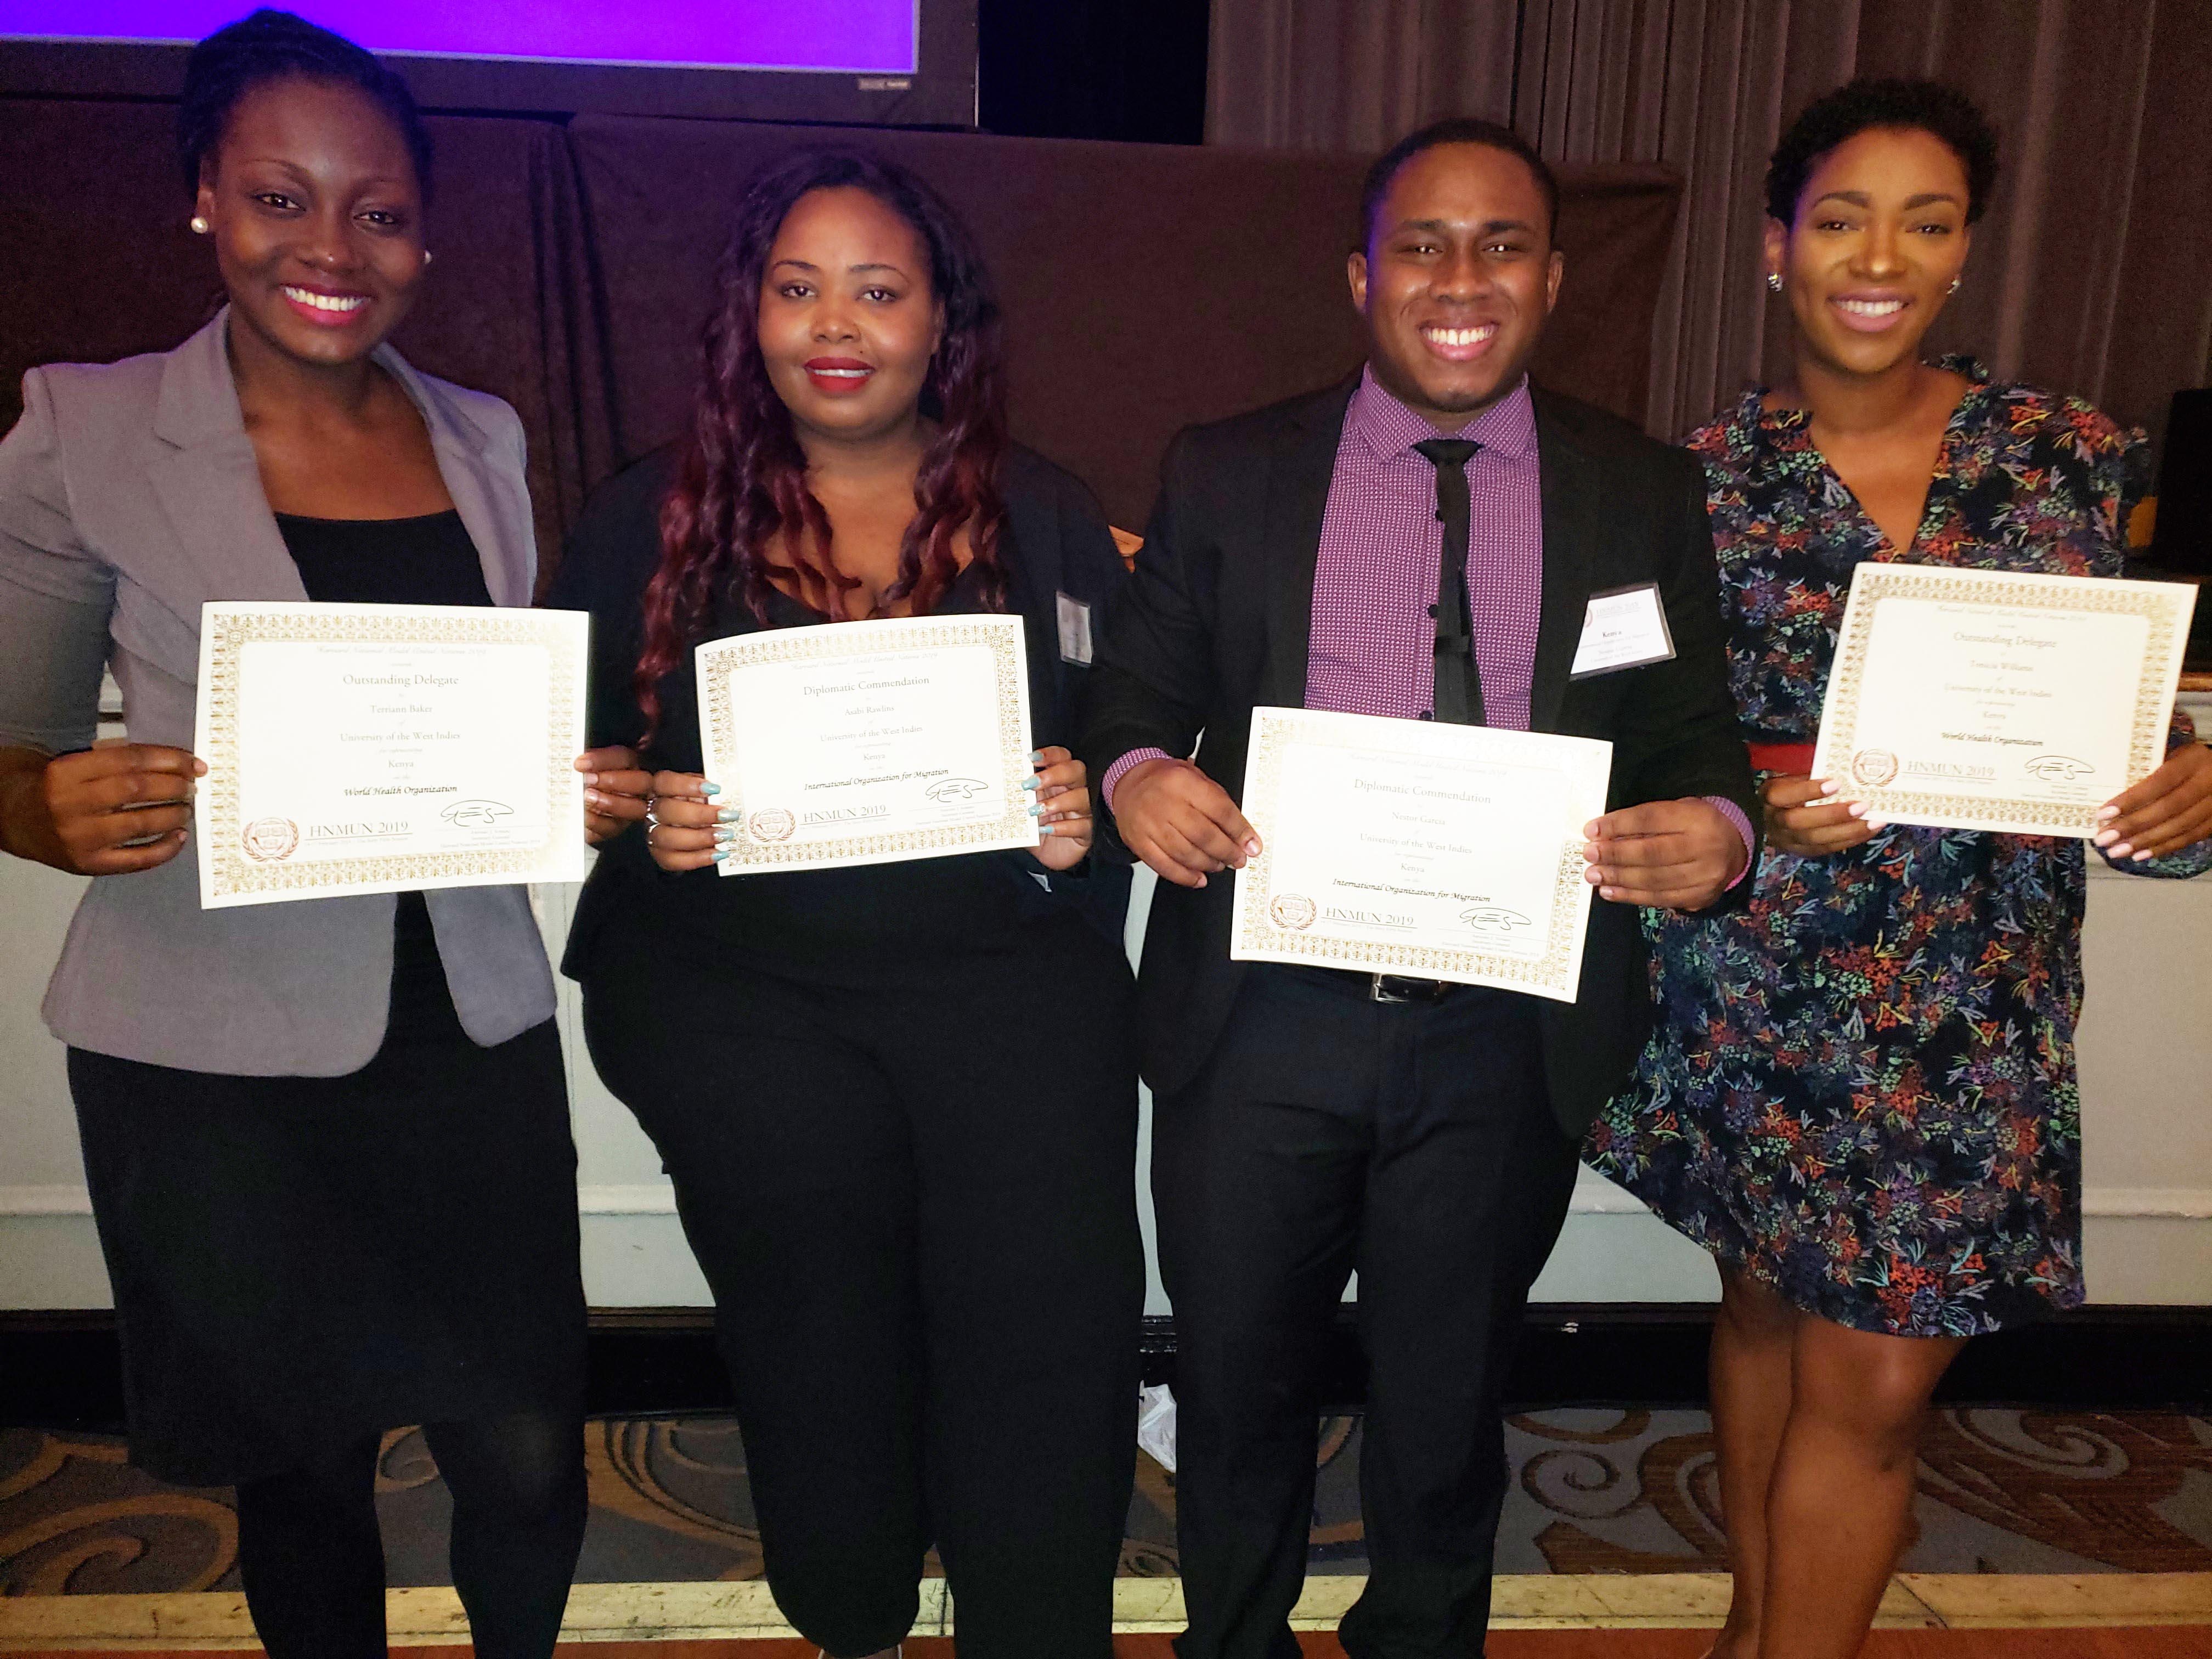 UWI Students take on the world and win at Harvard National Model UN